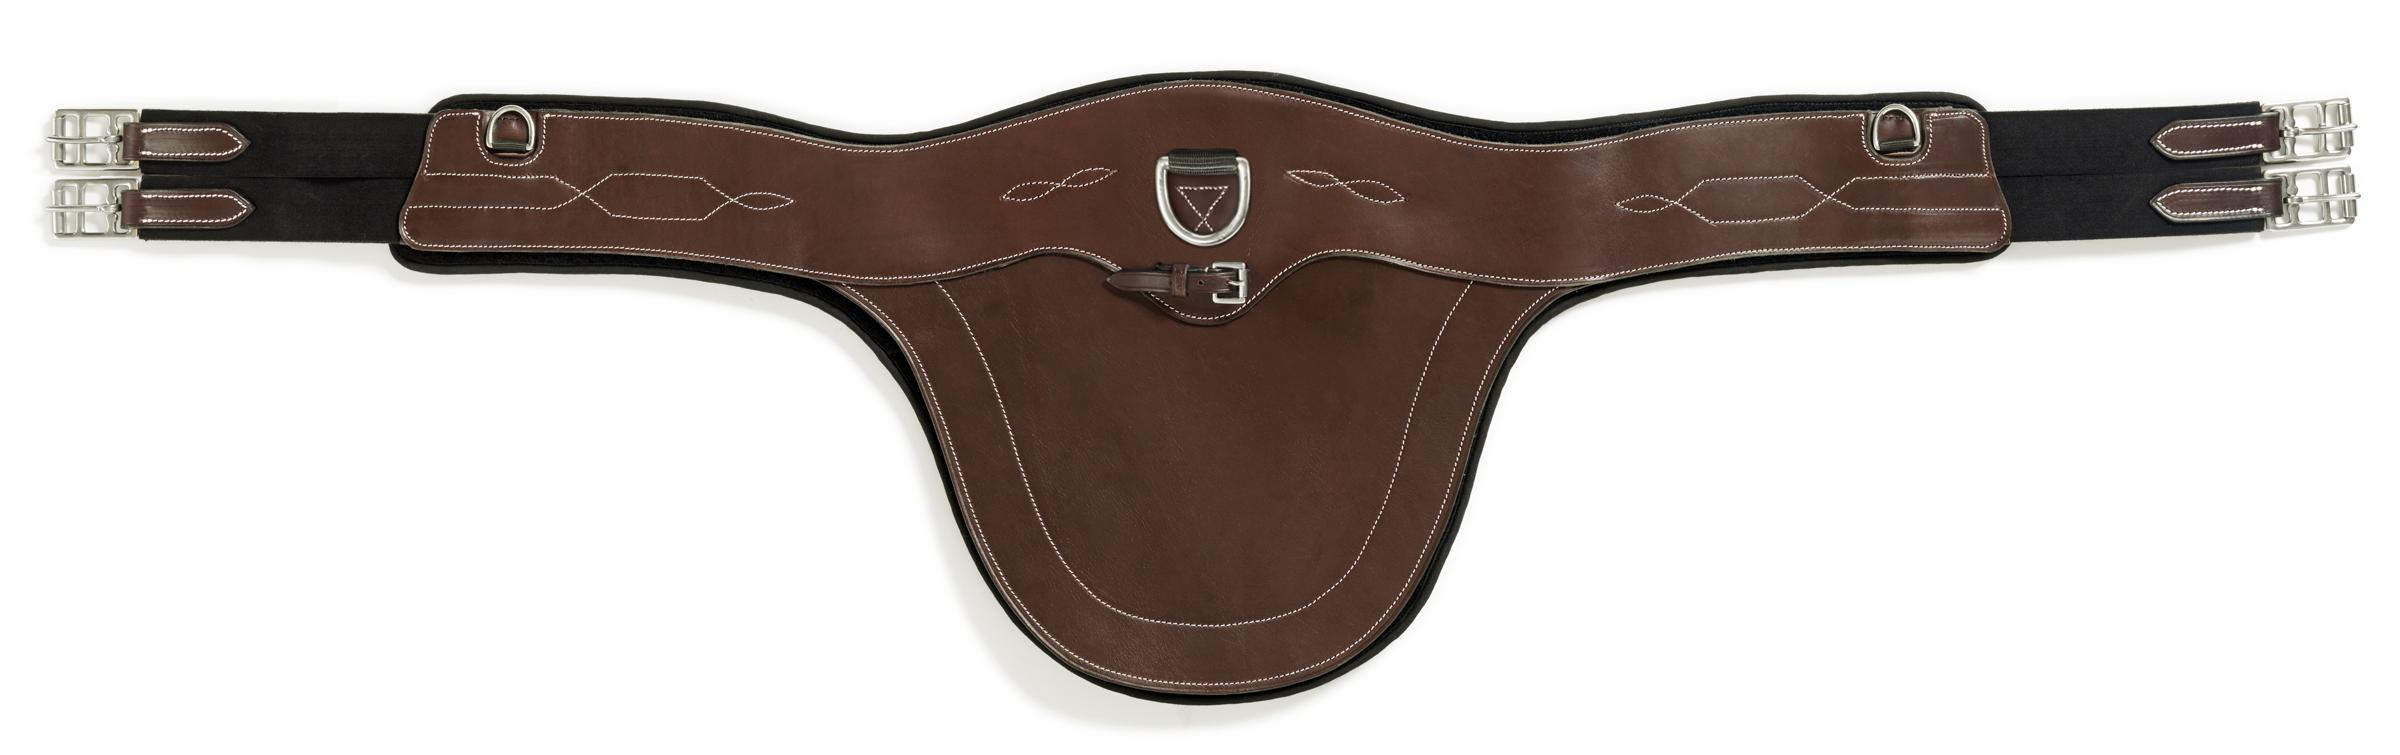 EquiFit T-Foam Belly Guard Girth